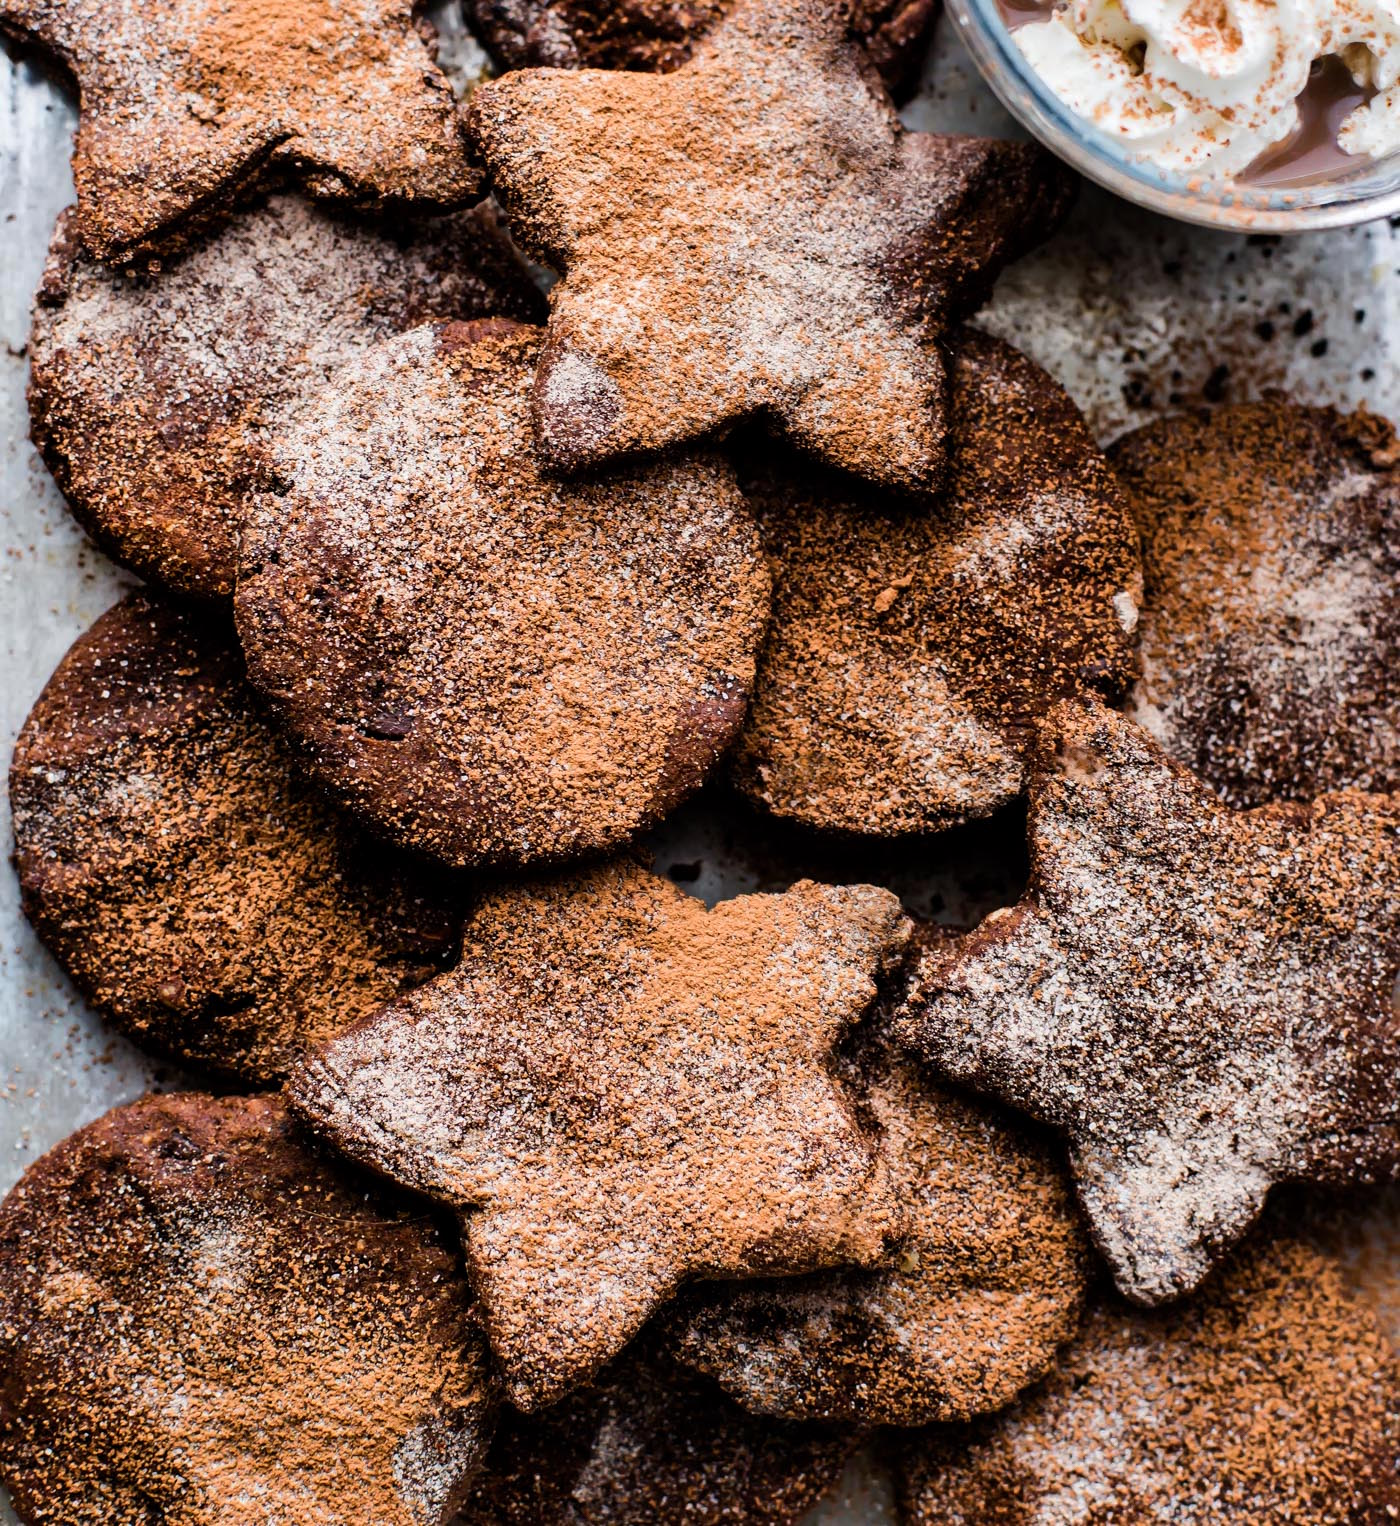 Mexican Hot Chocolate Sugar cookies taste and easy to make! Dark Chocolate, cinnamon, and Chili spices, soft, no butter needed. Paleo and vegan friendly.